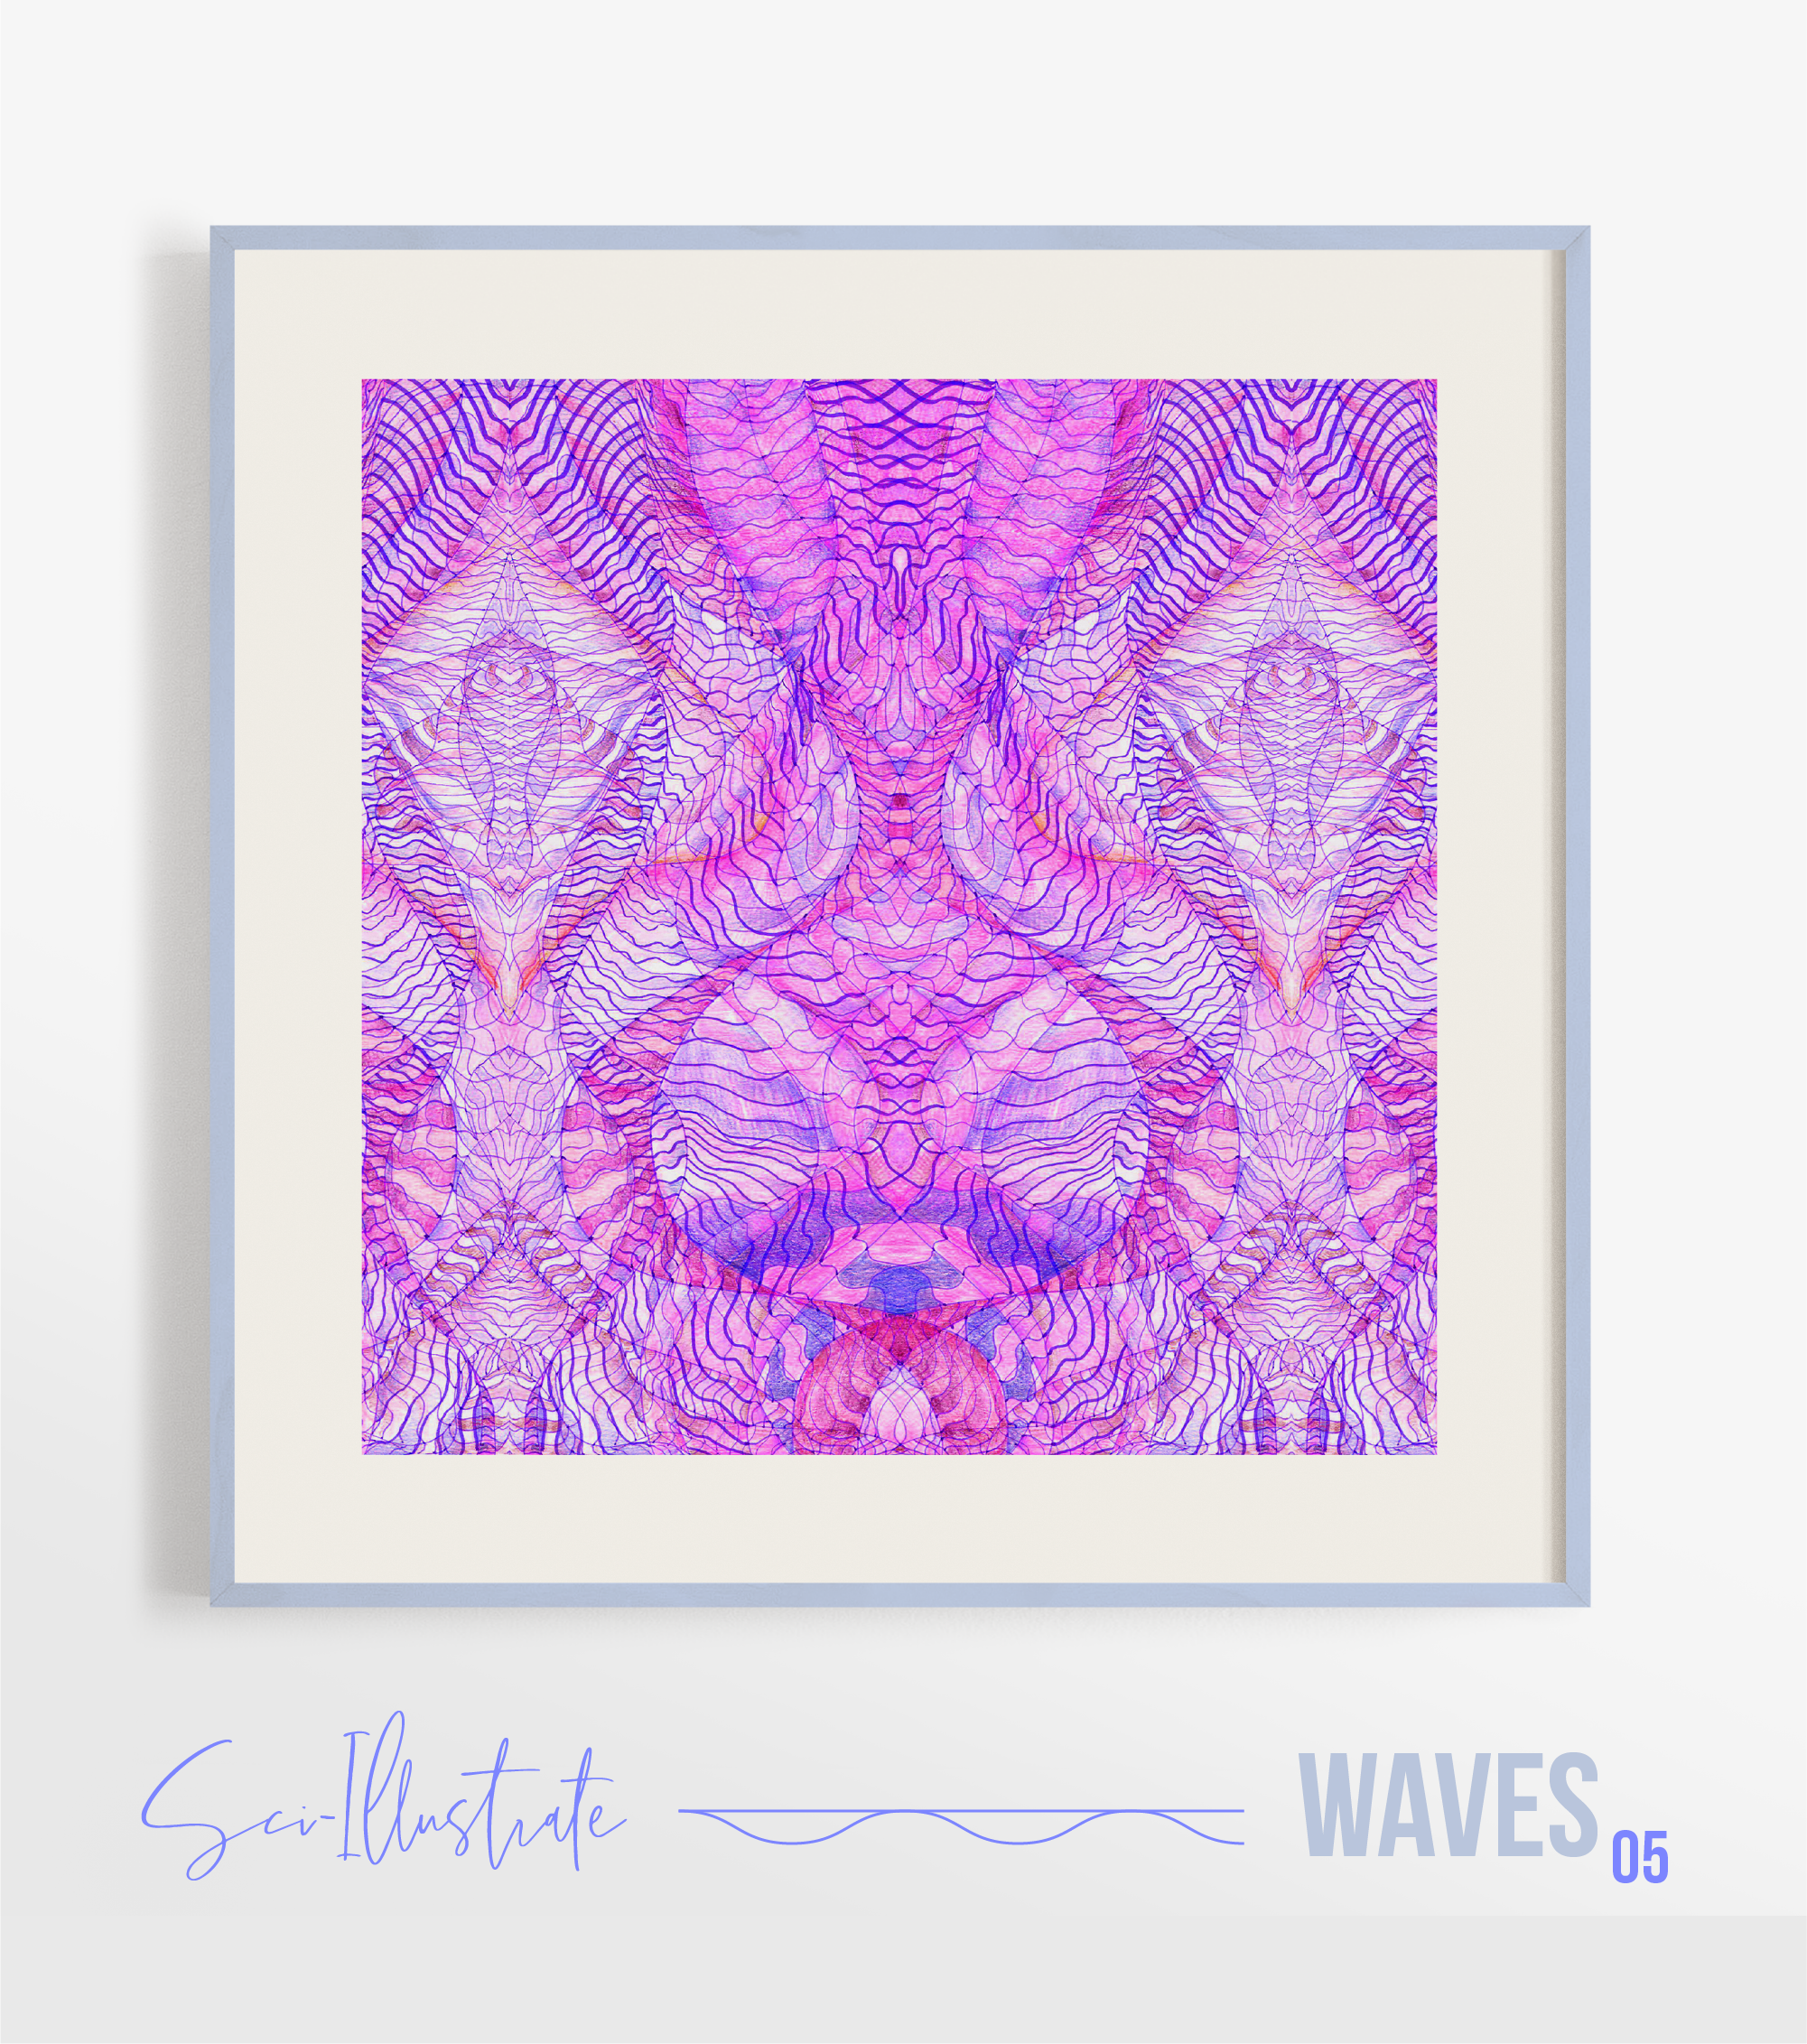 waves -SM 05-03-04.png